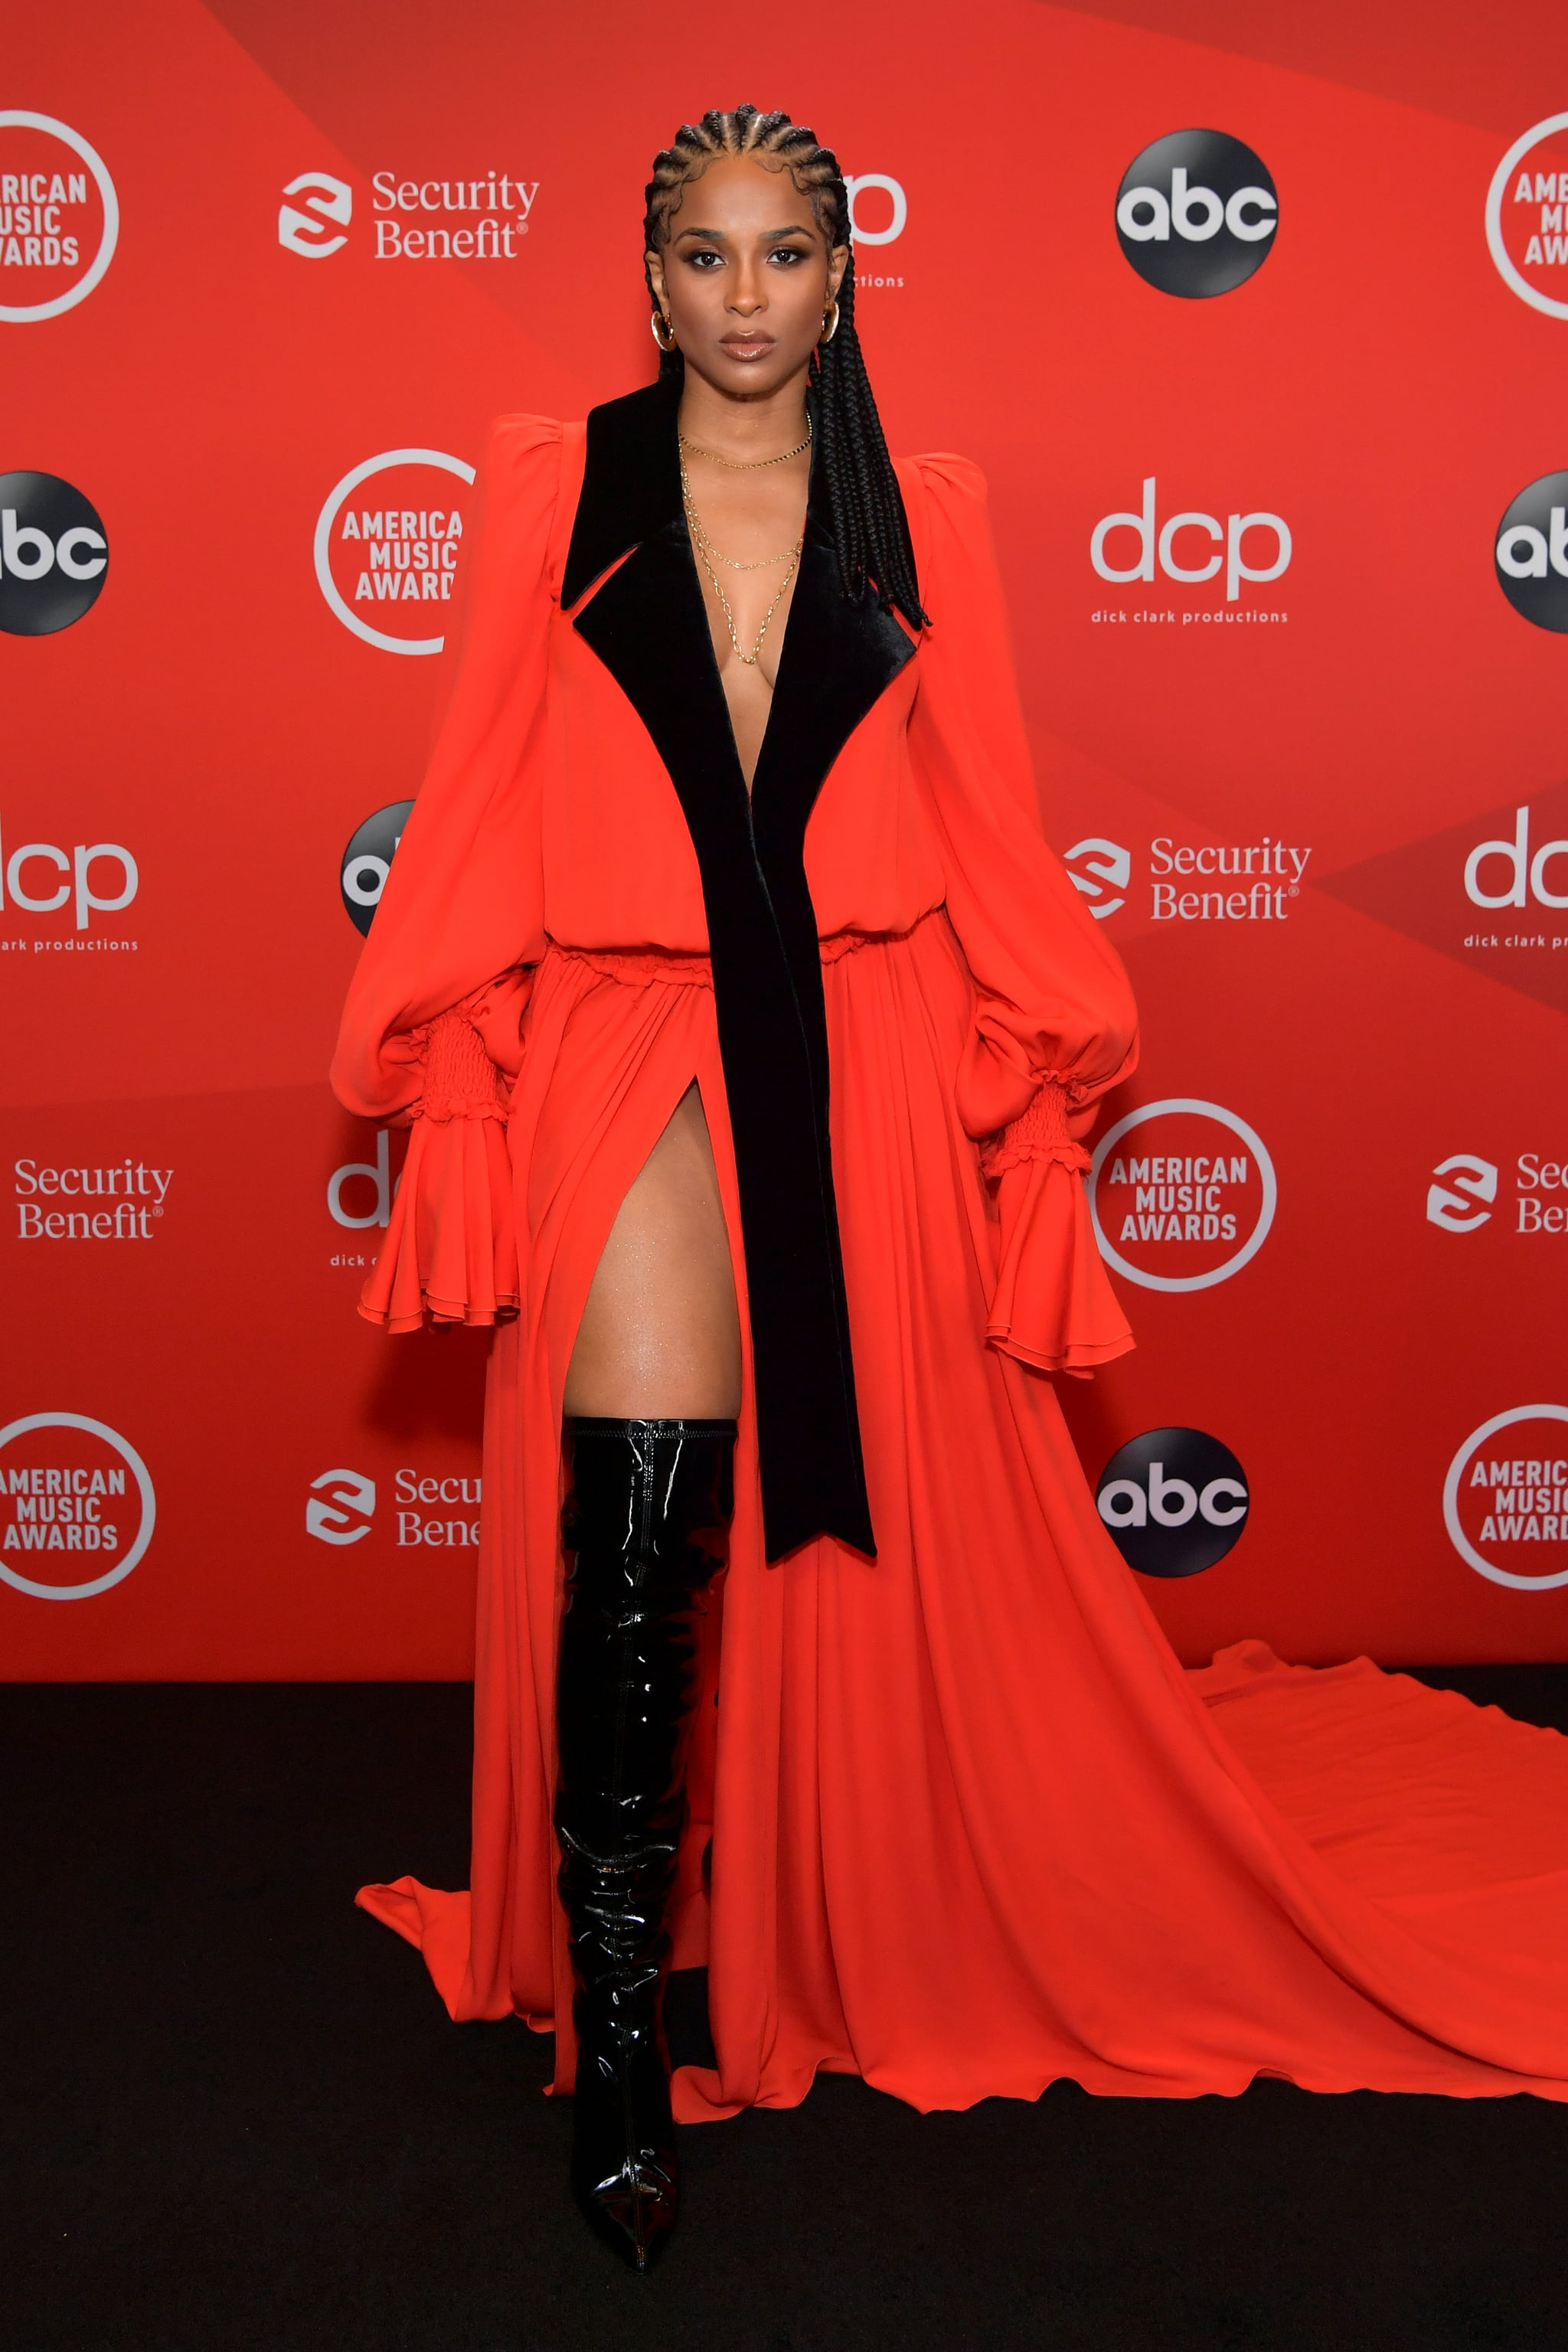 See Photos of Ciara at the 2020 American Music Awards | Ciara's Regal  Cornrows at the AMAs Managed to Distract Us From Her Striking Gown |  POPSUGAR Beauty Photo 2